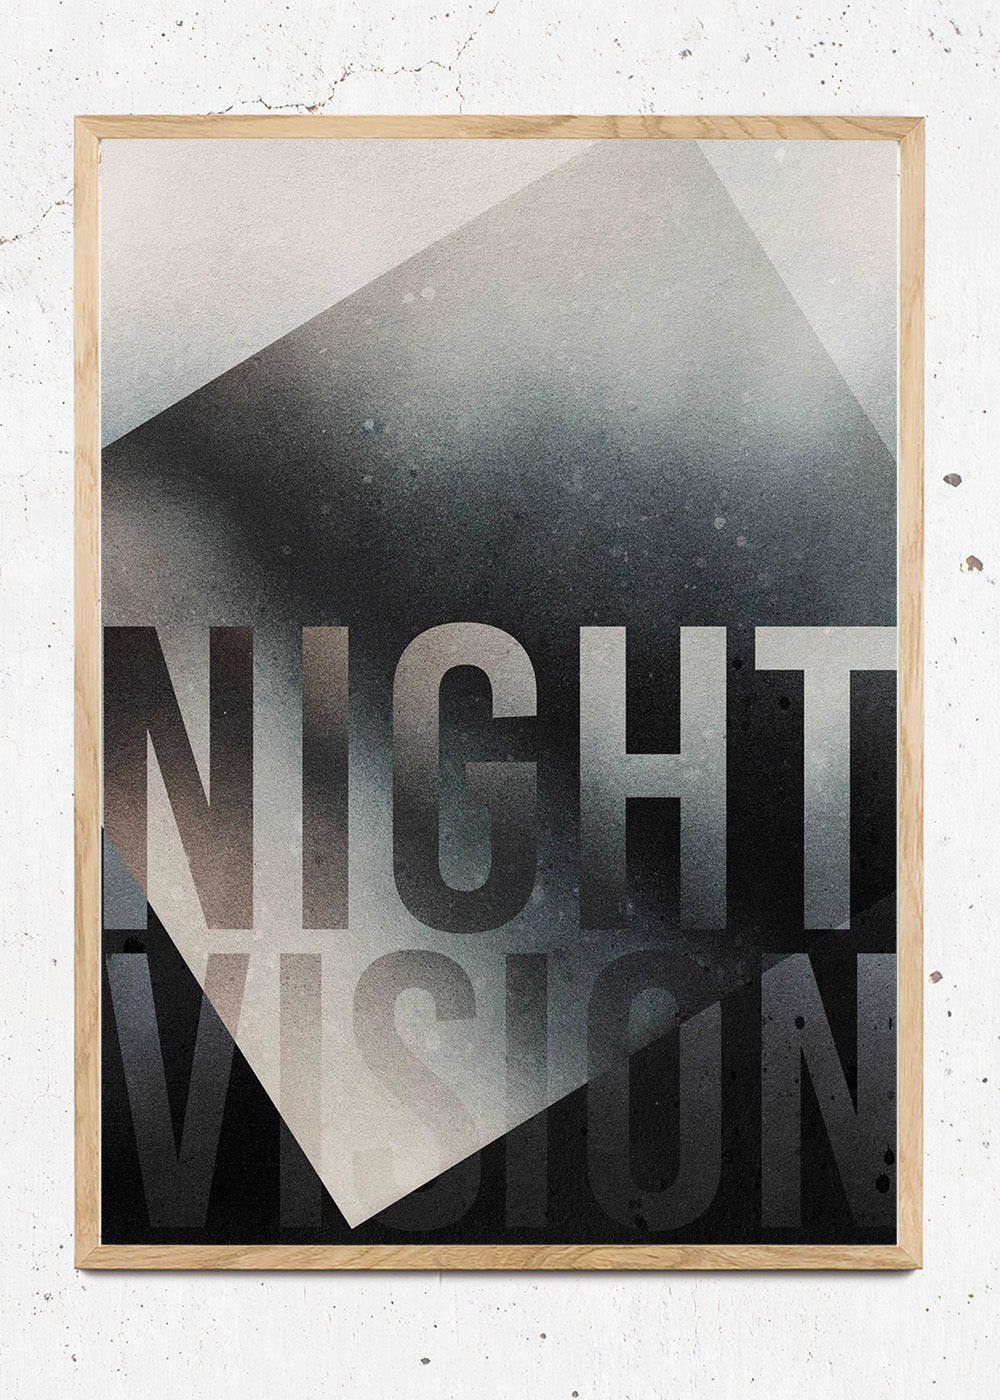 Plakat af Nightvision fra Paradisco Productions